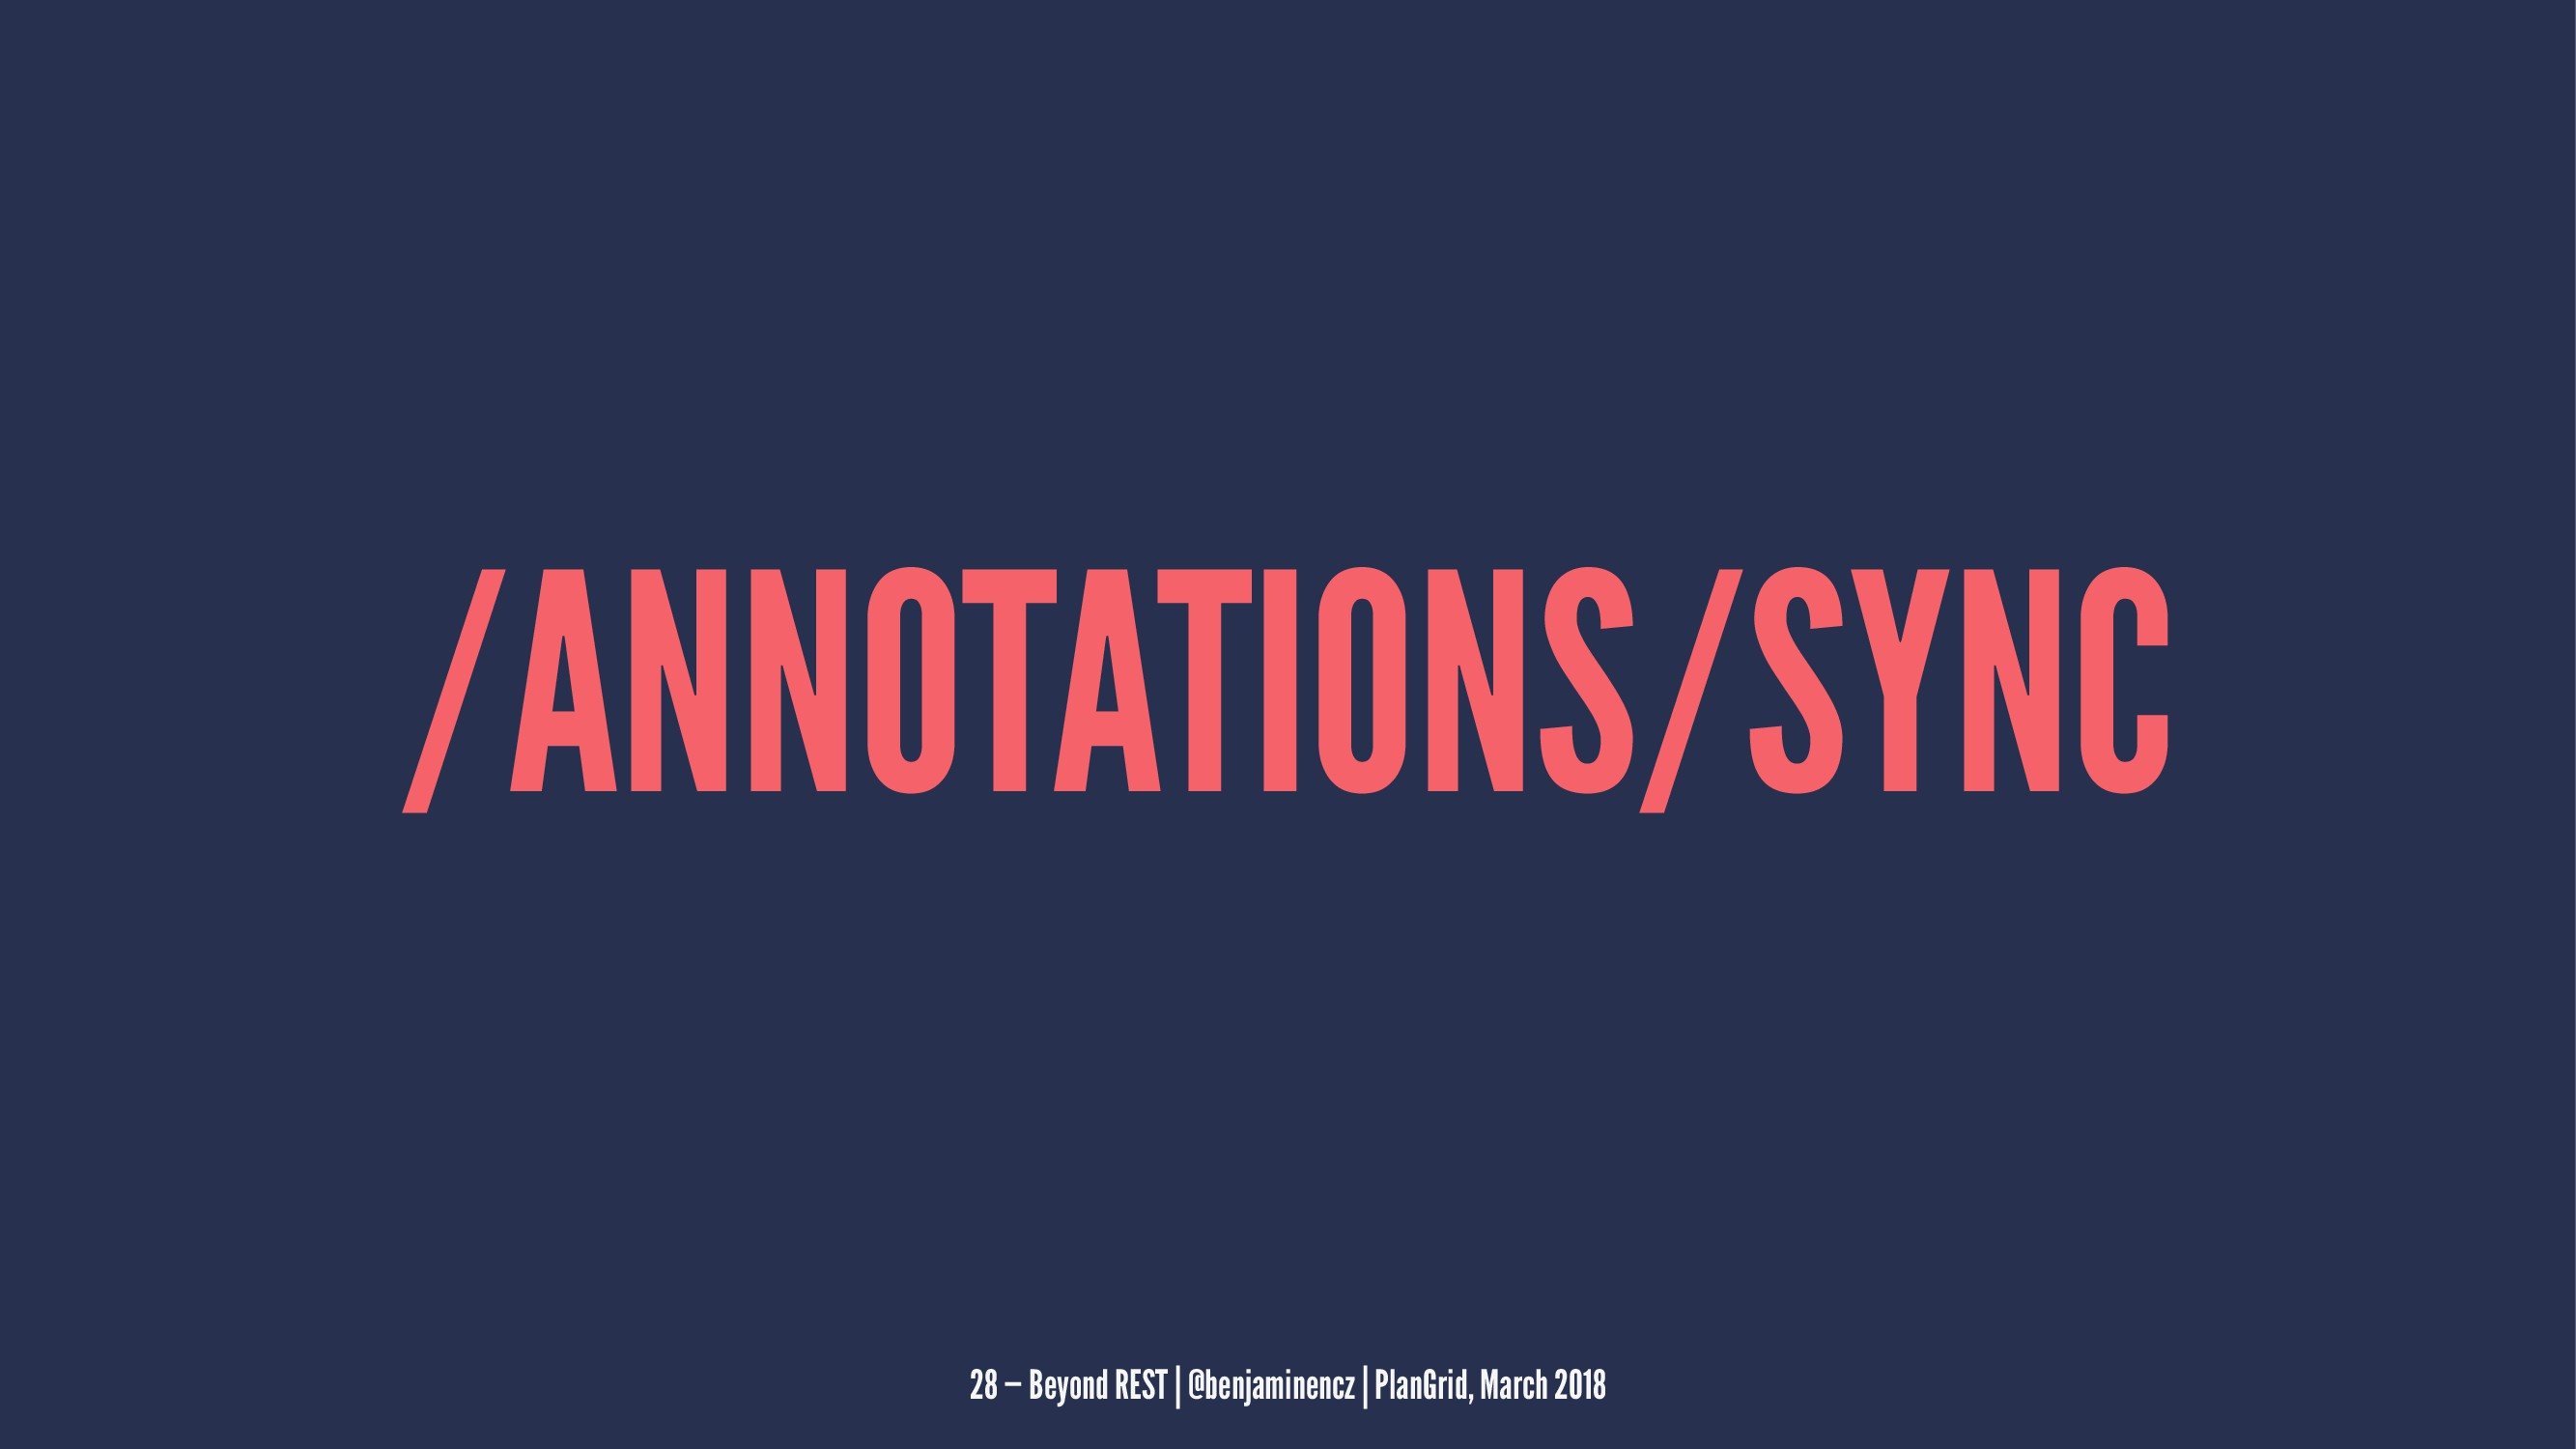 /ANNOTATIONS/SYNC 28 — Beyond REST | @benjamine...